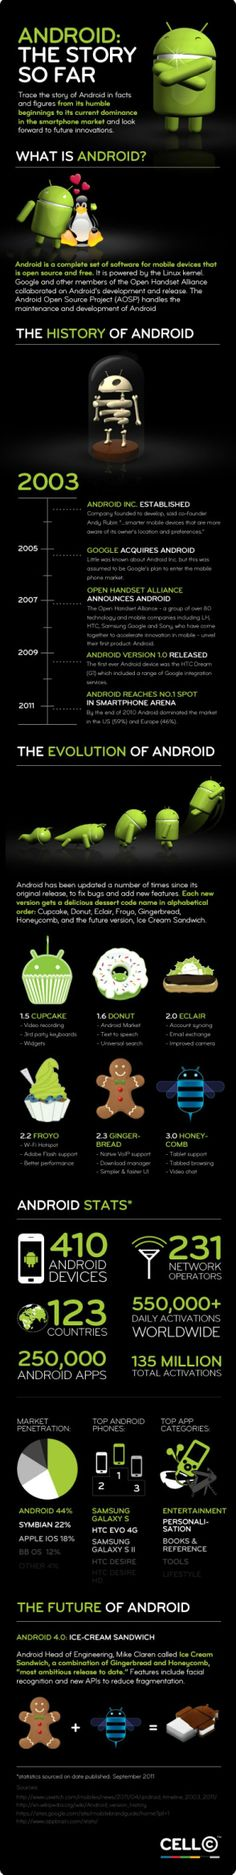 #Android history with interesting facts